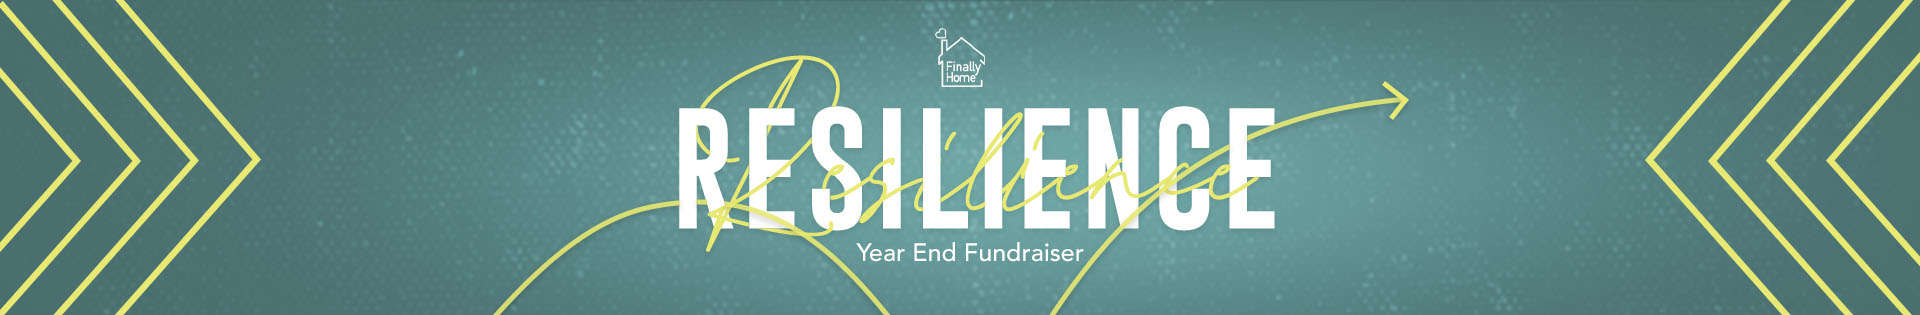 Resilience Year end fundraiser for Colorado families